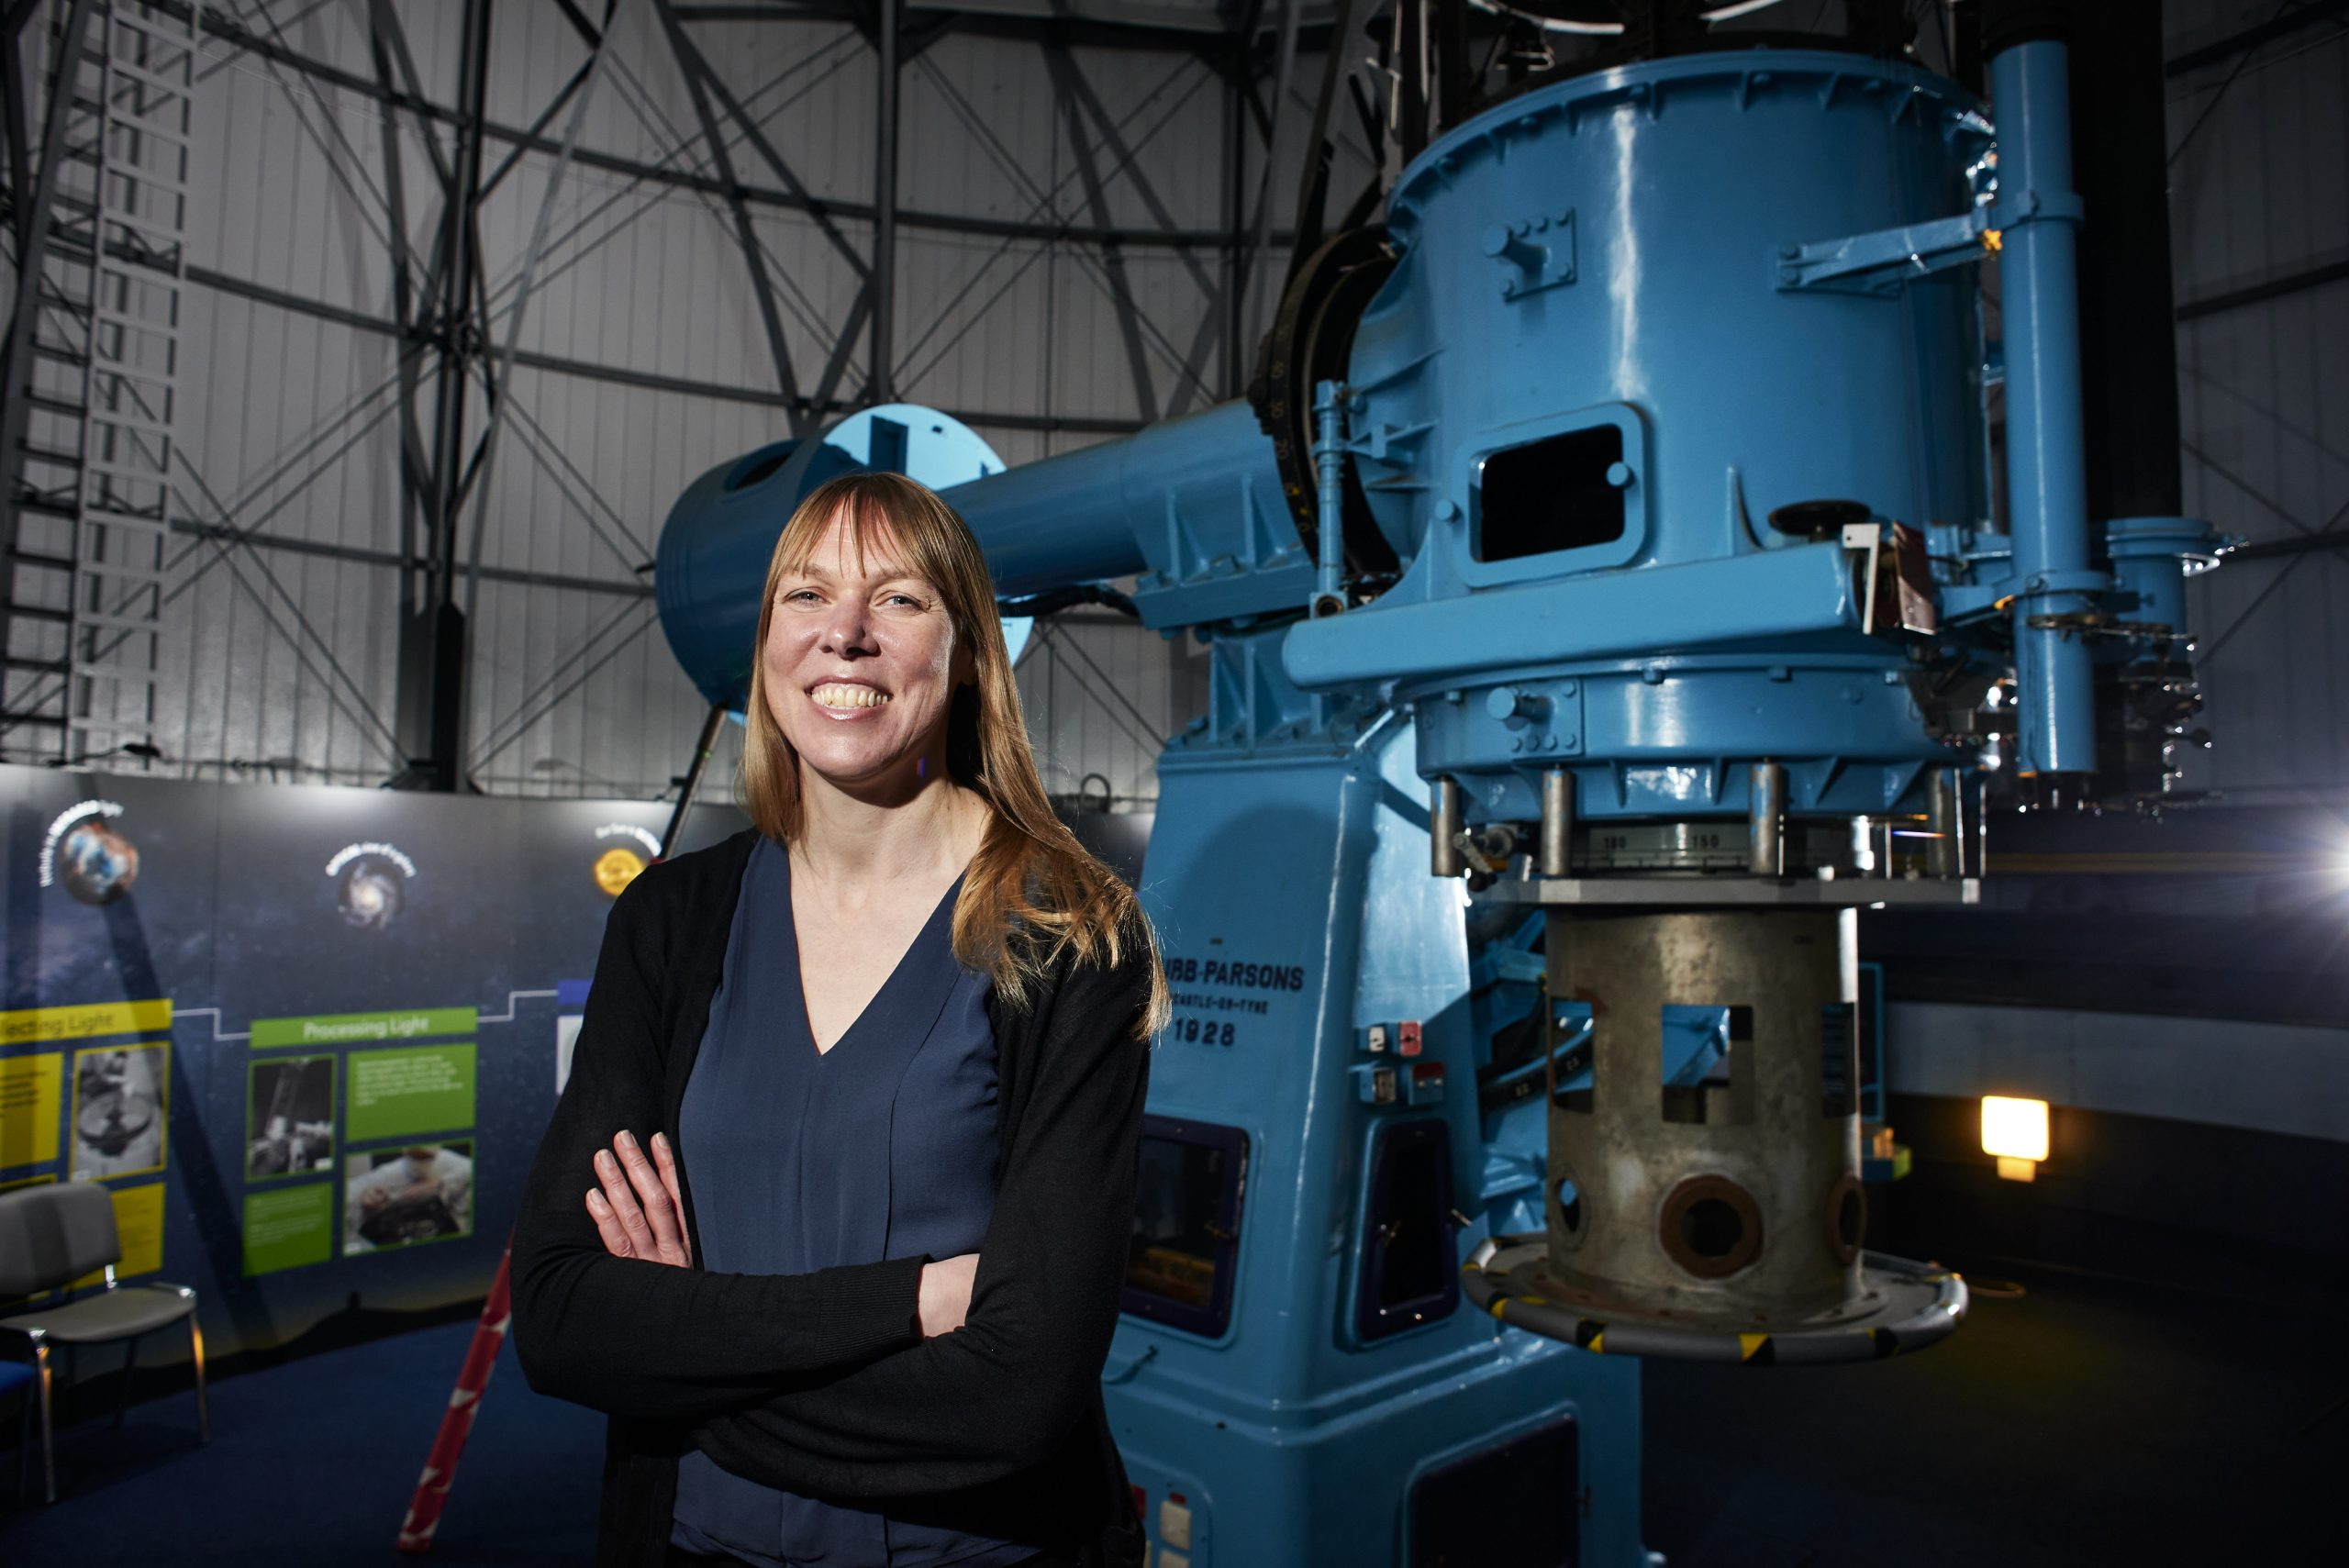 Professor Catherine Heymans appointed as Astronomer Royal for Scotland. - Scottish News